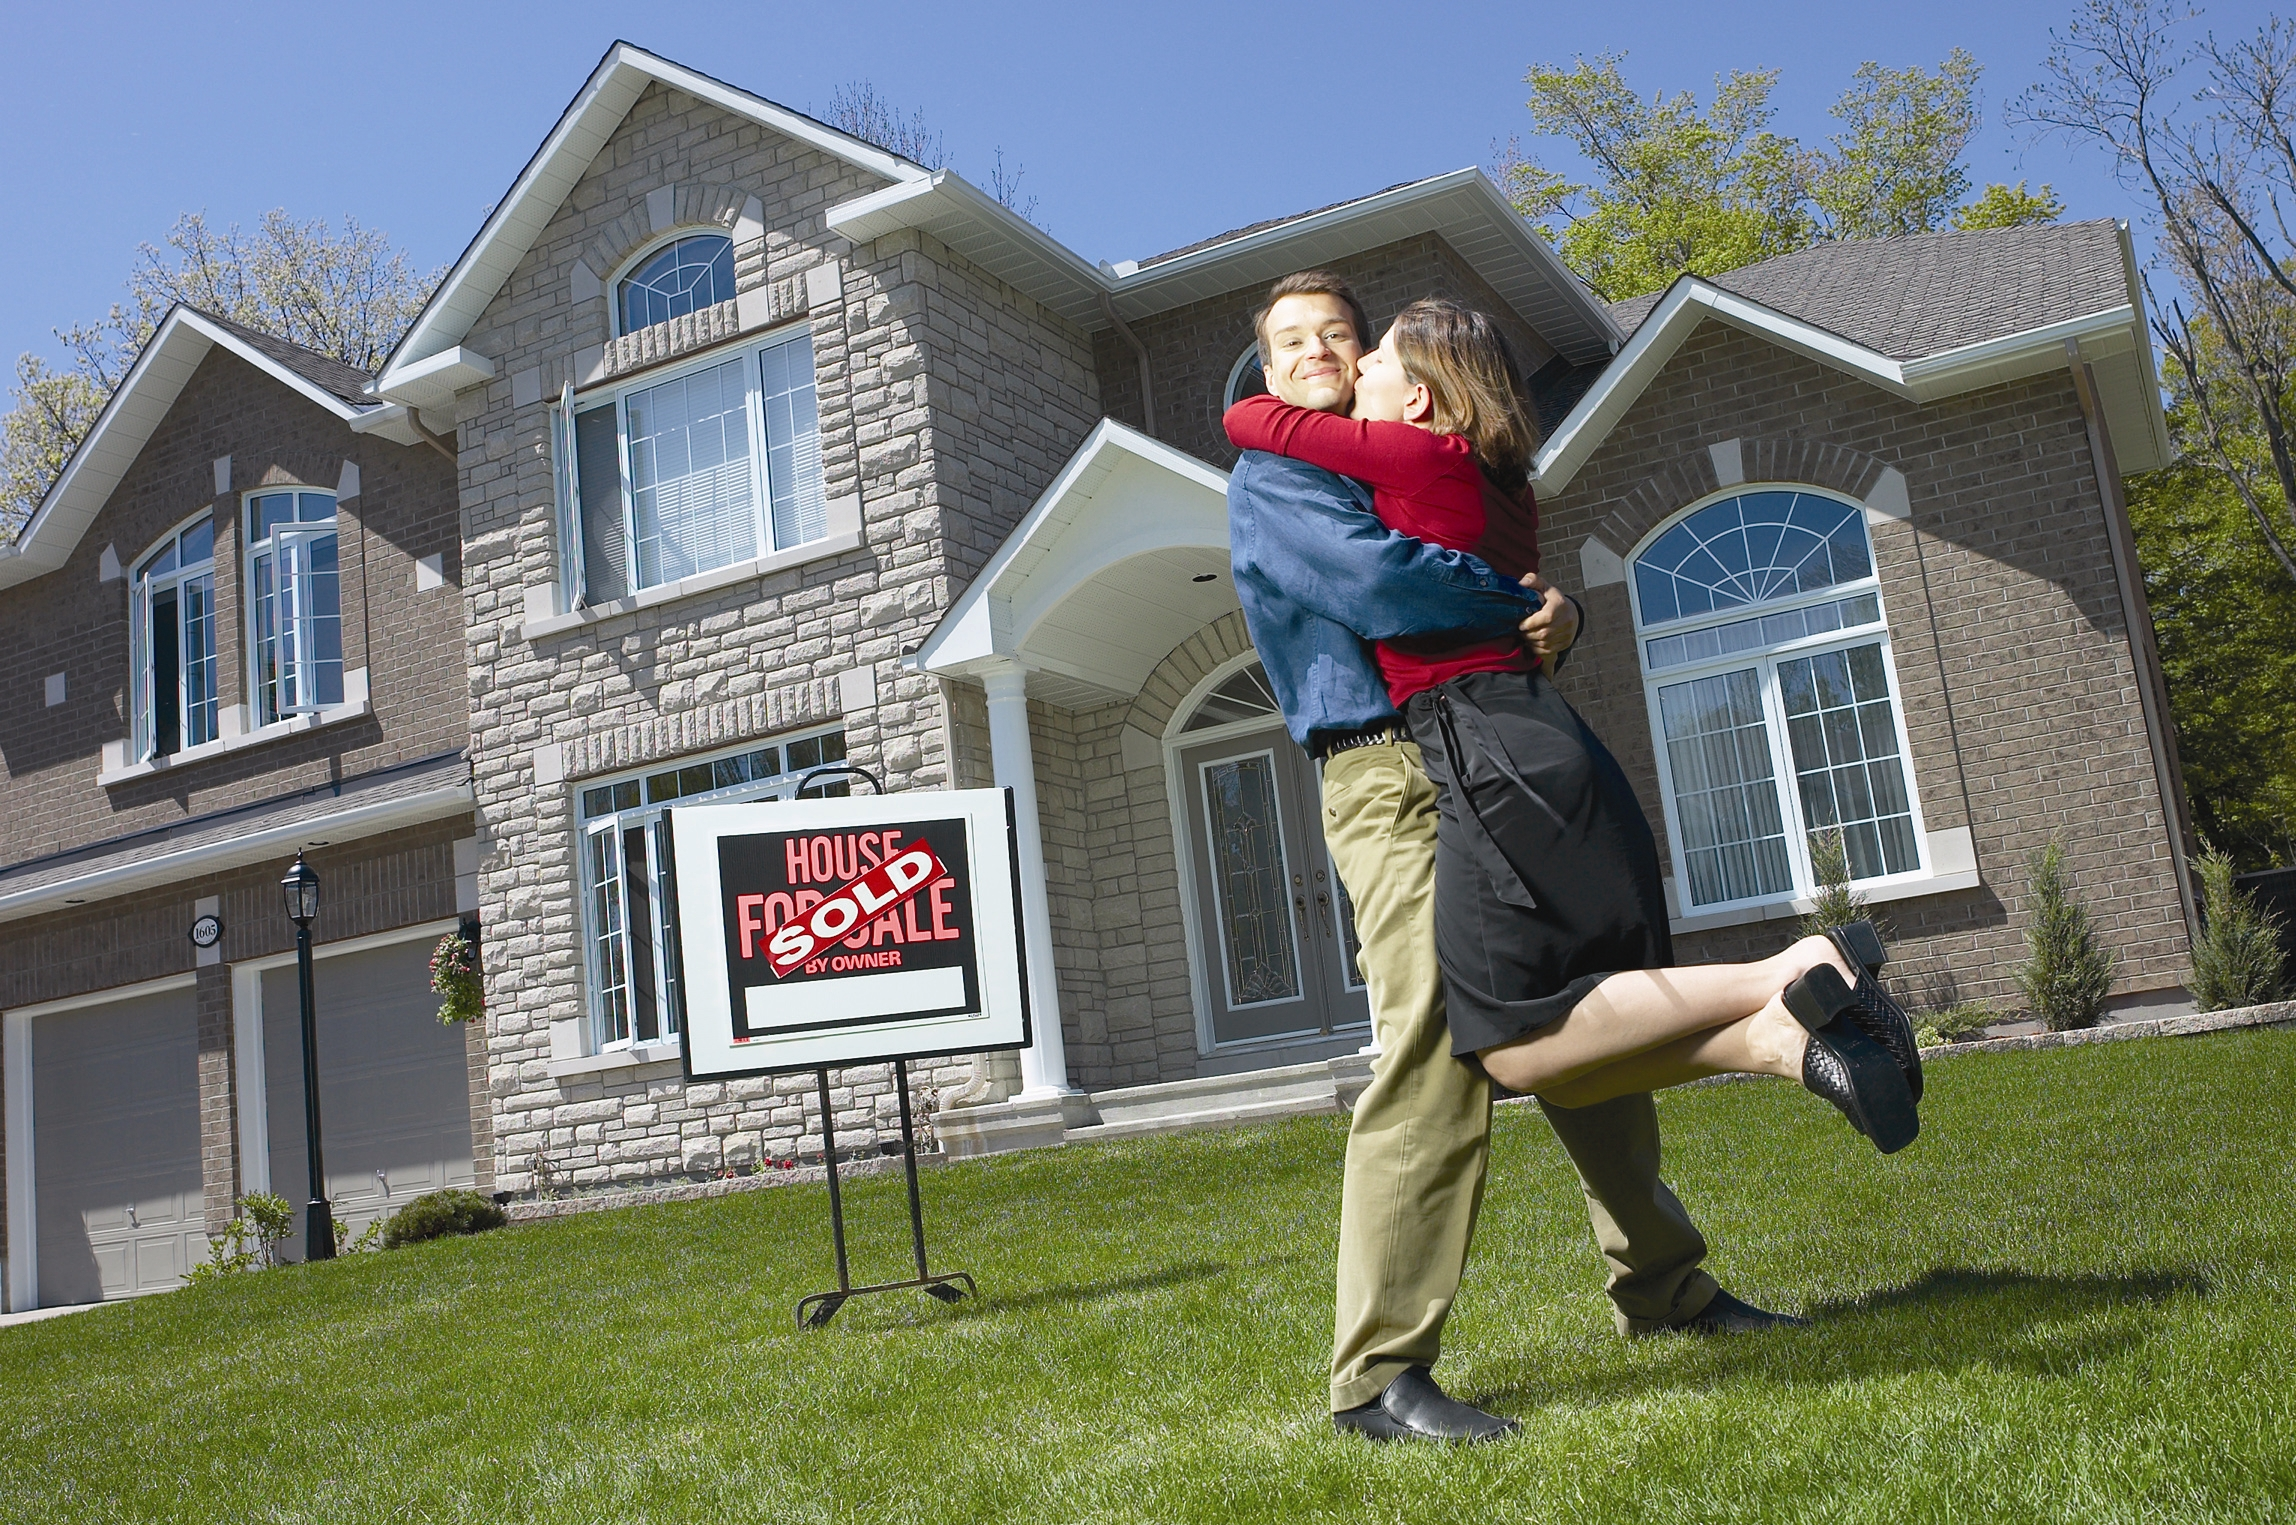 Usda financing it s back for Build your new home